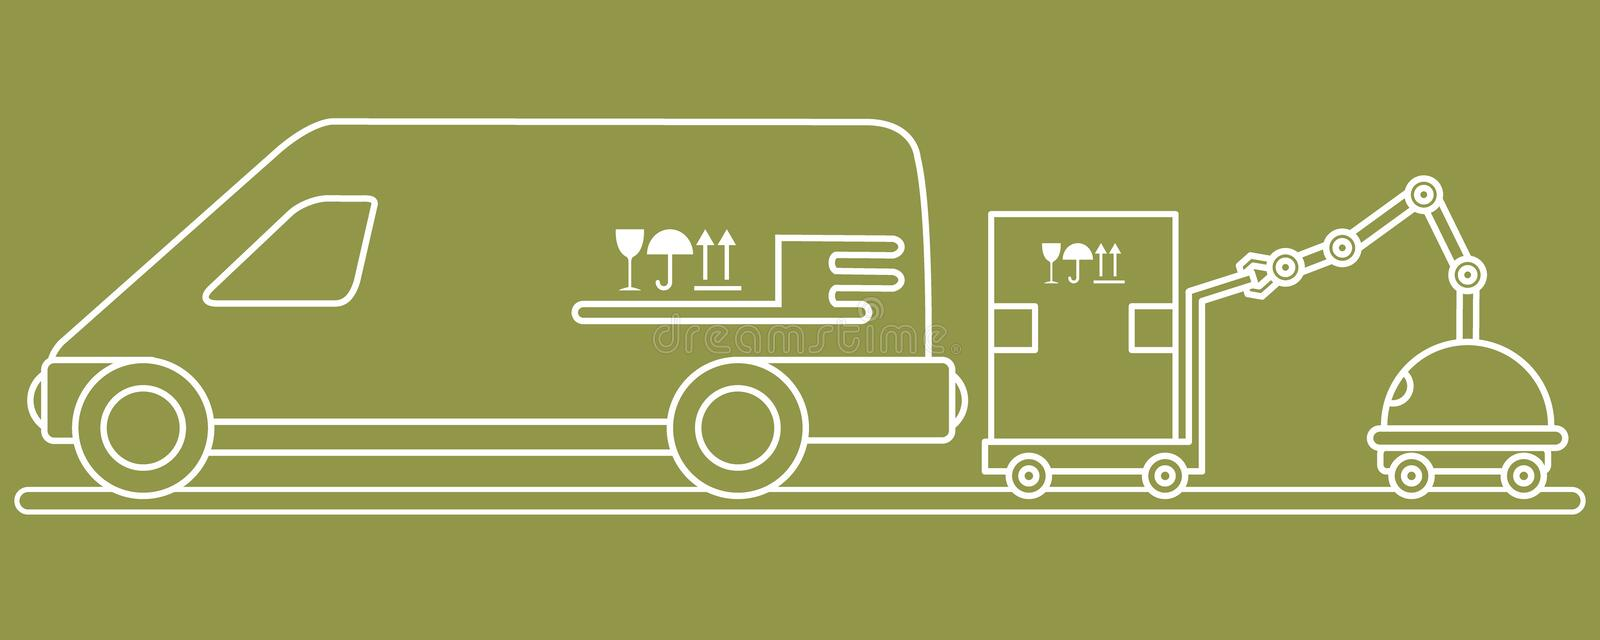 Automation warehouse processes. Smart Logistic. Vector illustration with robot loader loads boxes into a car. Automation warehouse processes. Smart Logistic royalty free illustration